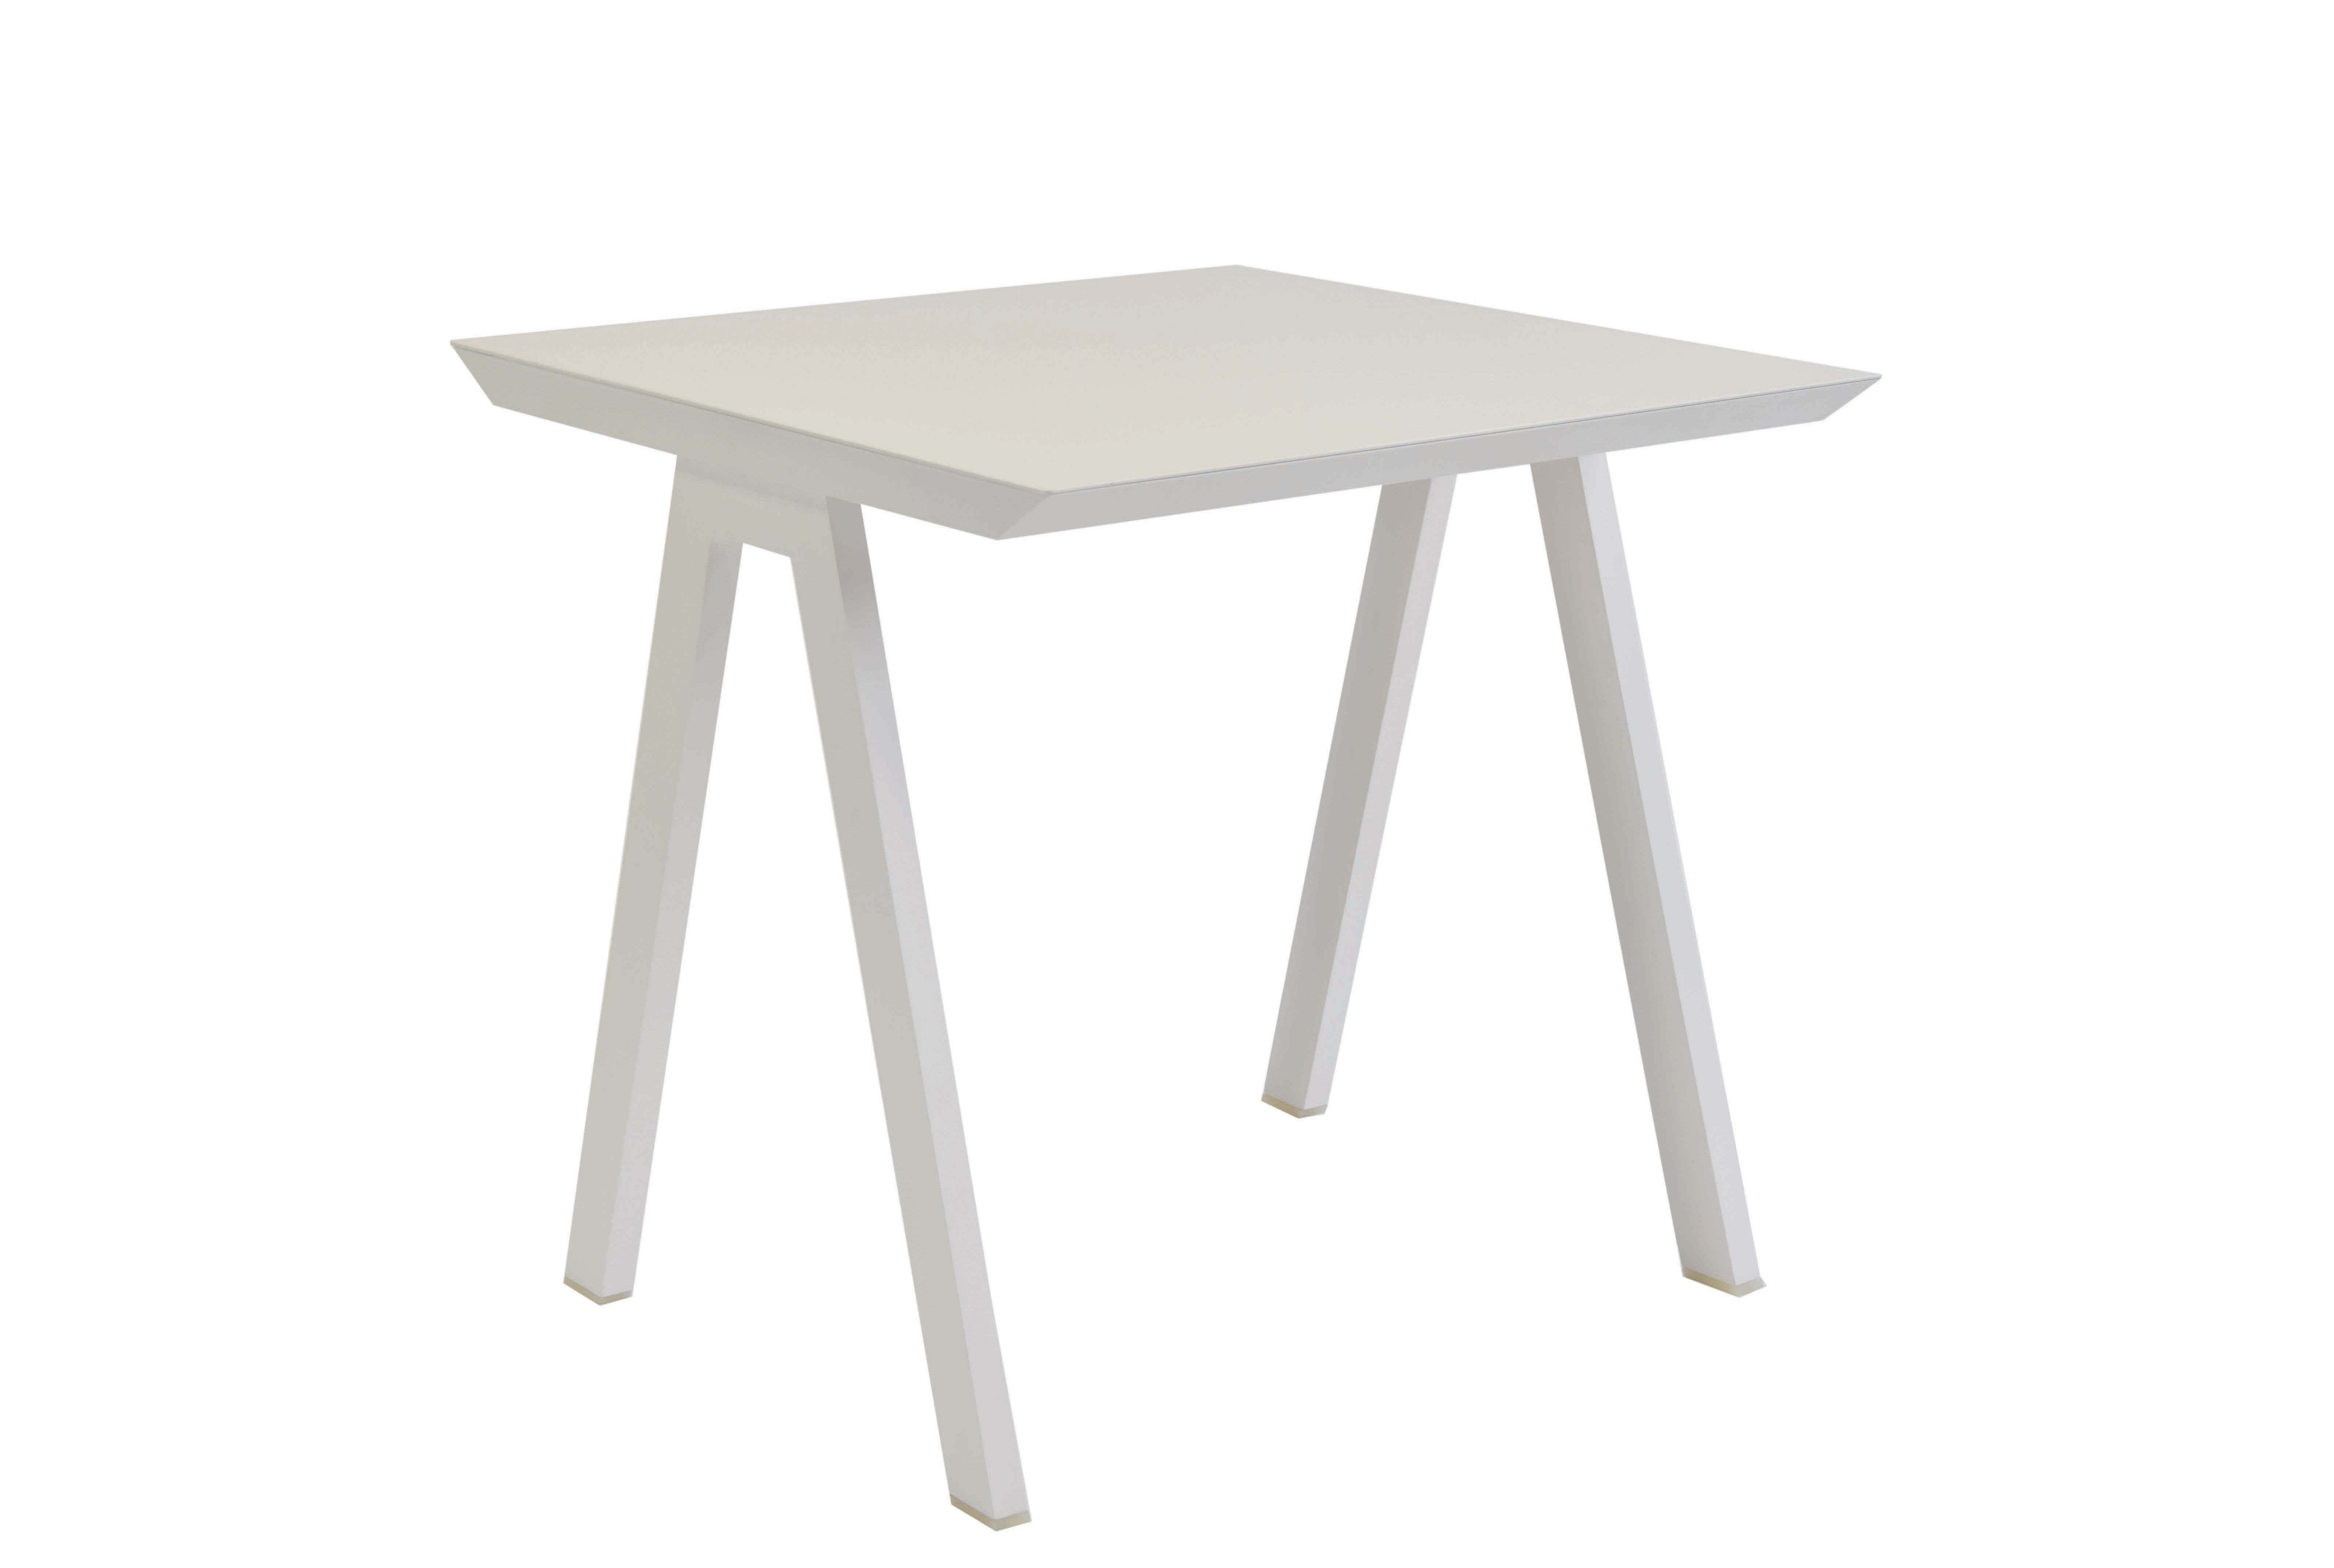 Outdoor - Garden Tables - Vanity Square table - / 80 x 80 cm - Aluminium by Vlaemynck - White - Lacquered aluminium